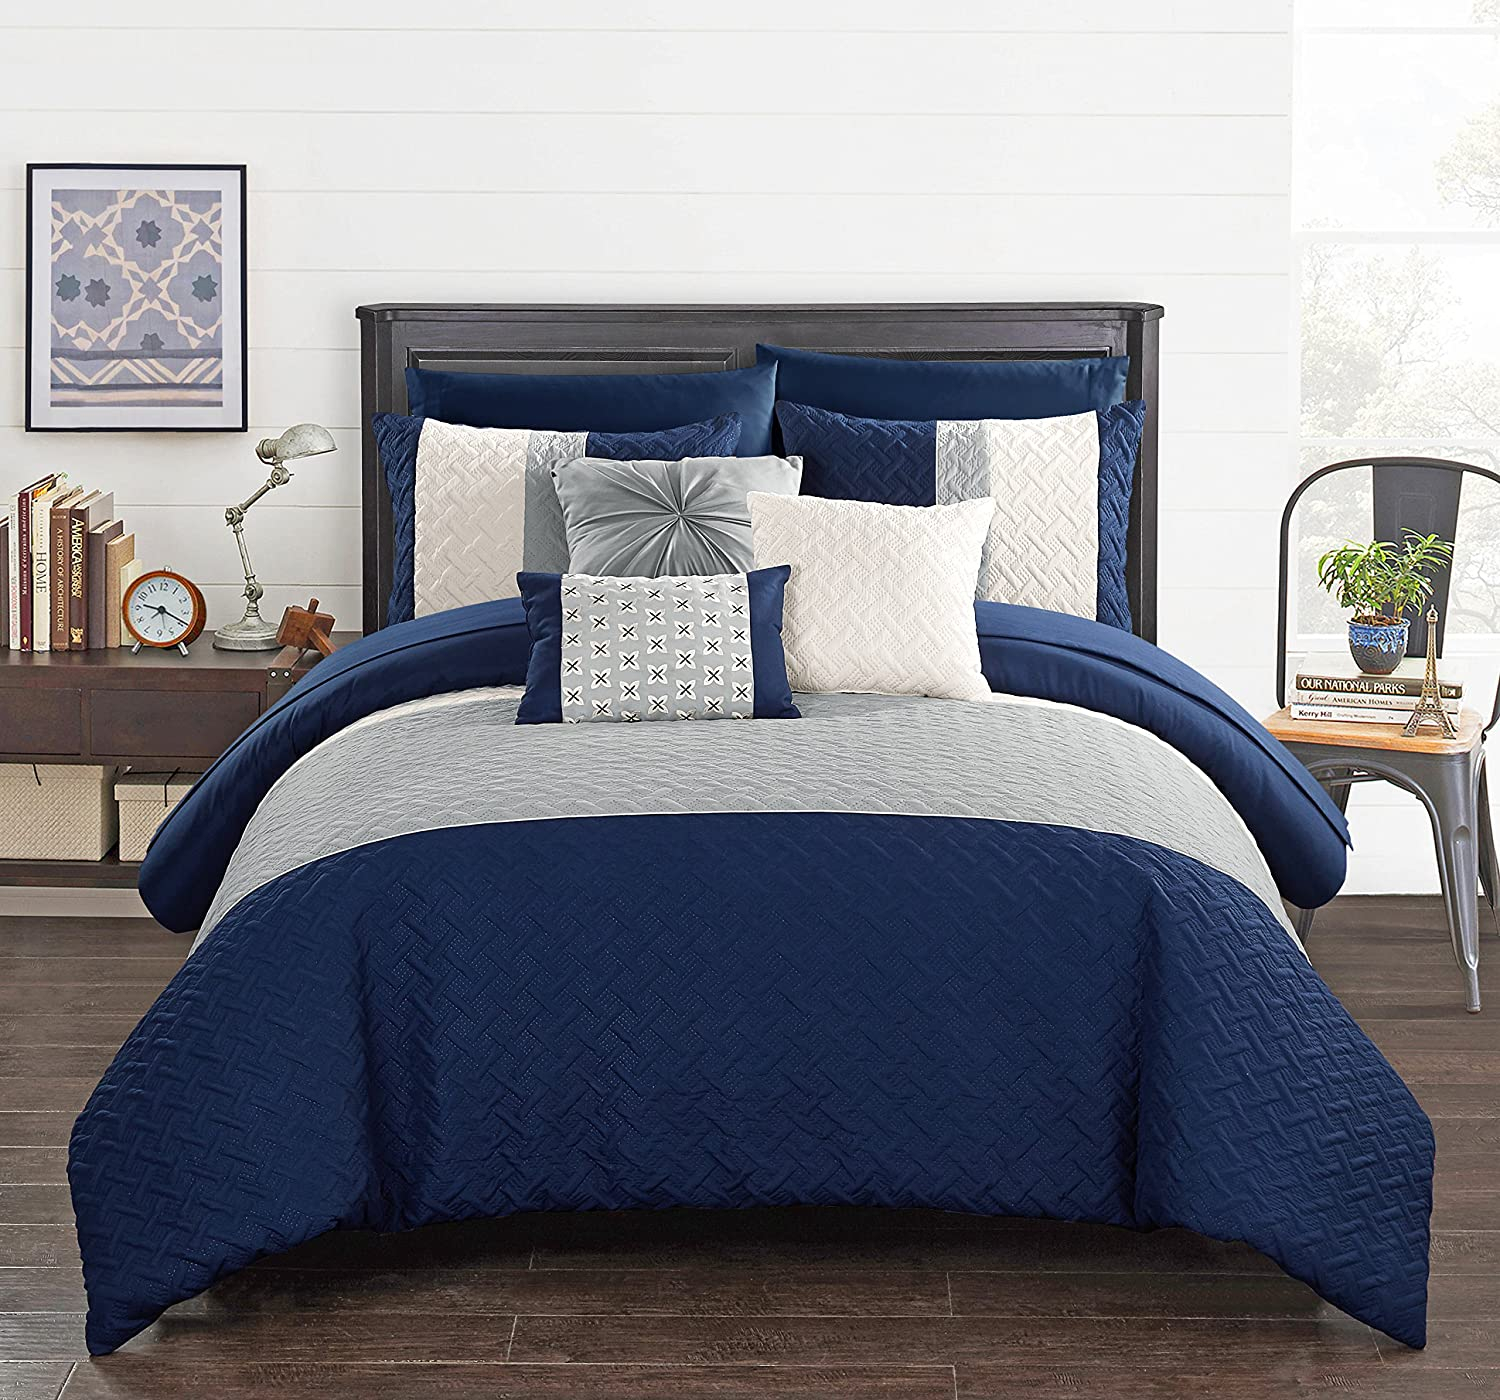 Chic Home Osnat 10 Piece Comforter Set Color Block Quilted Embroidered Design Bag Bedding – Sheets Decorative Pillows Shams Included, King, Navy